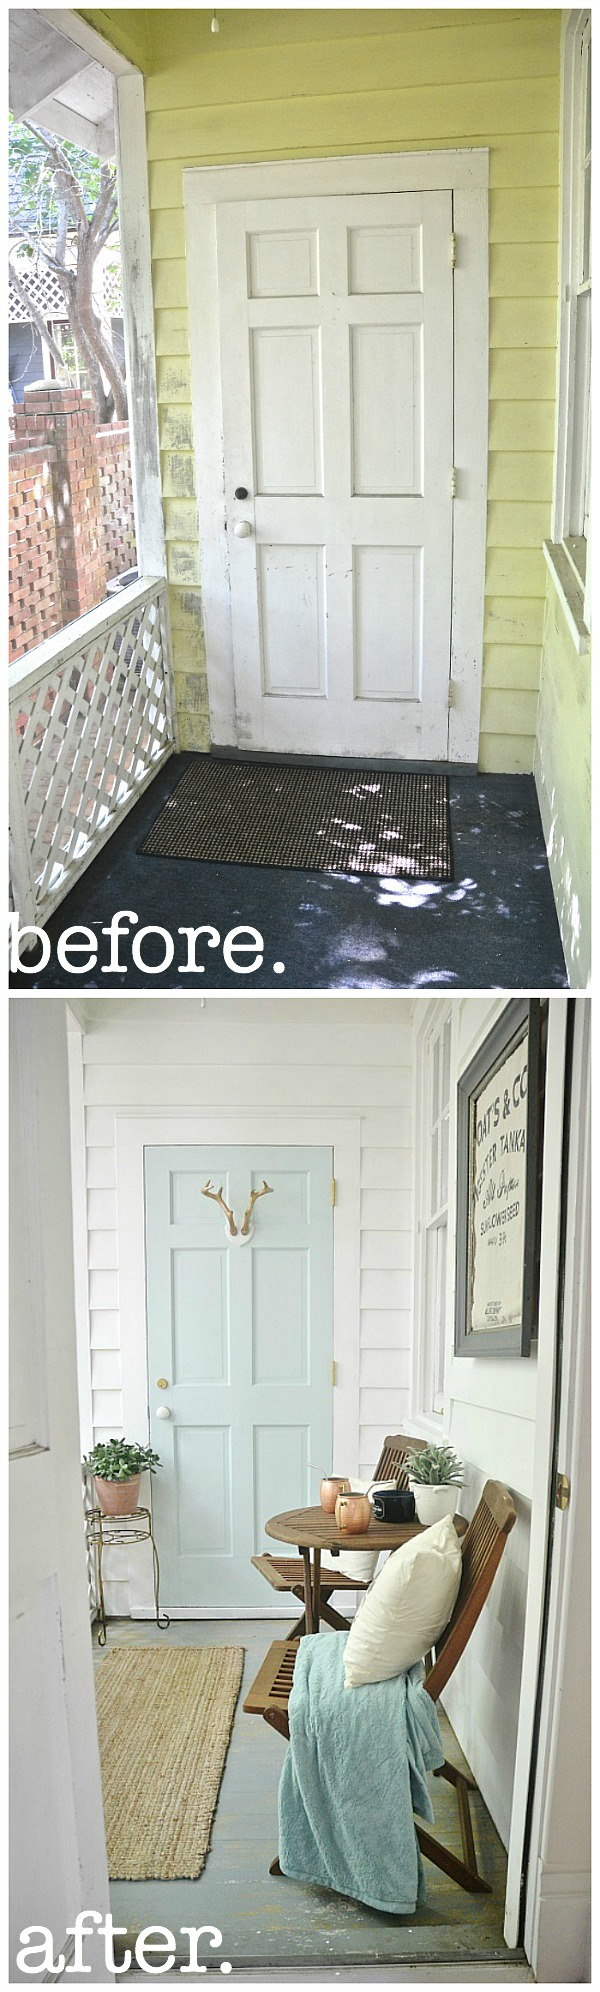 Sunroom makeover - For practically free!